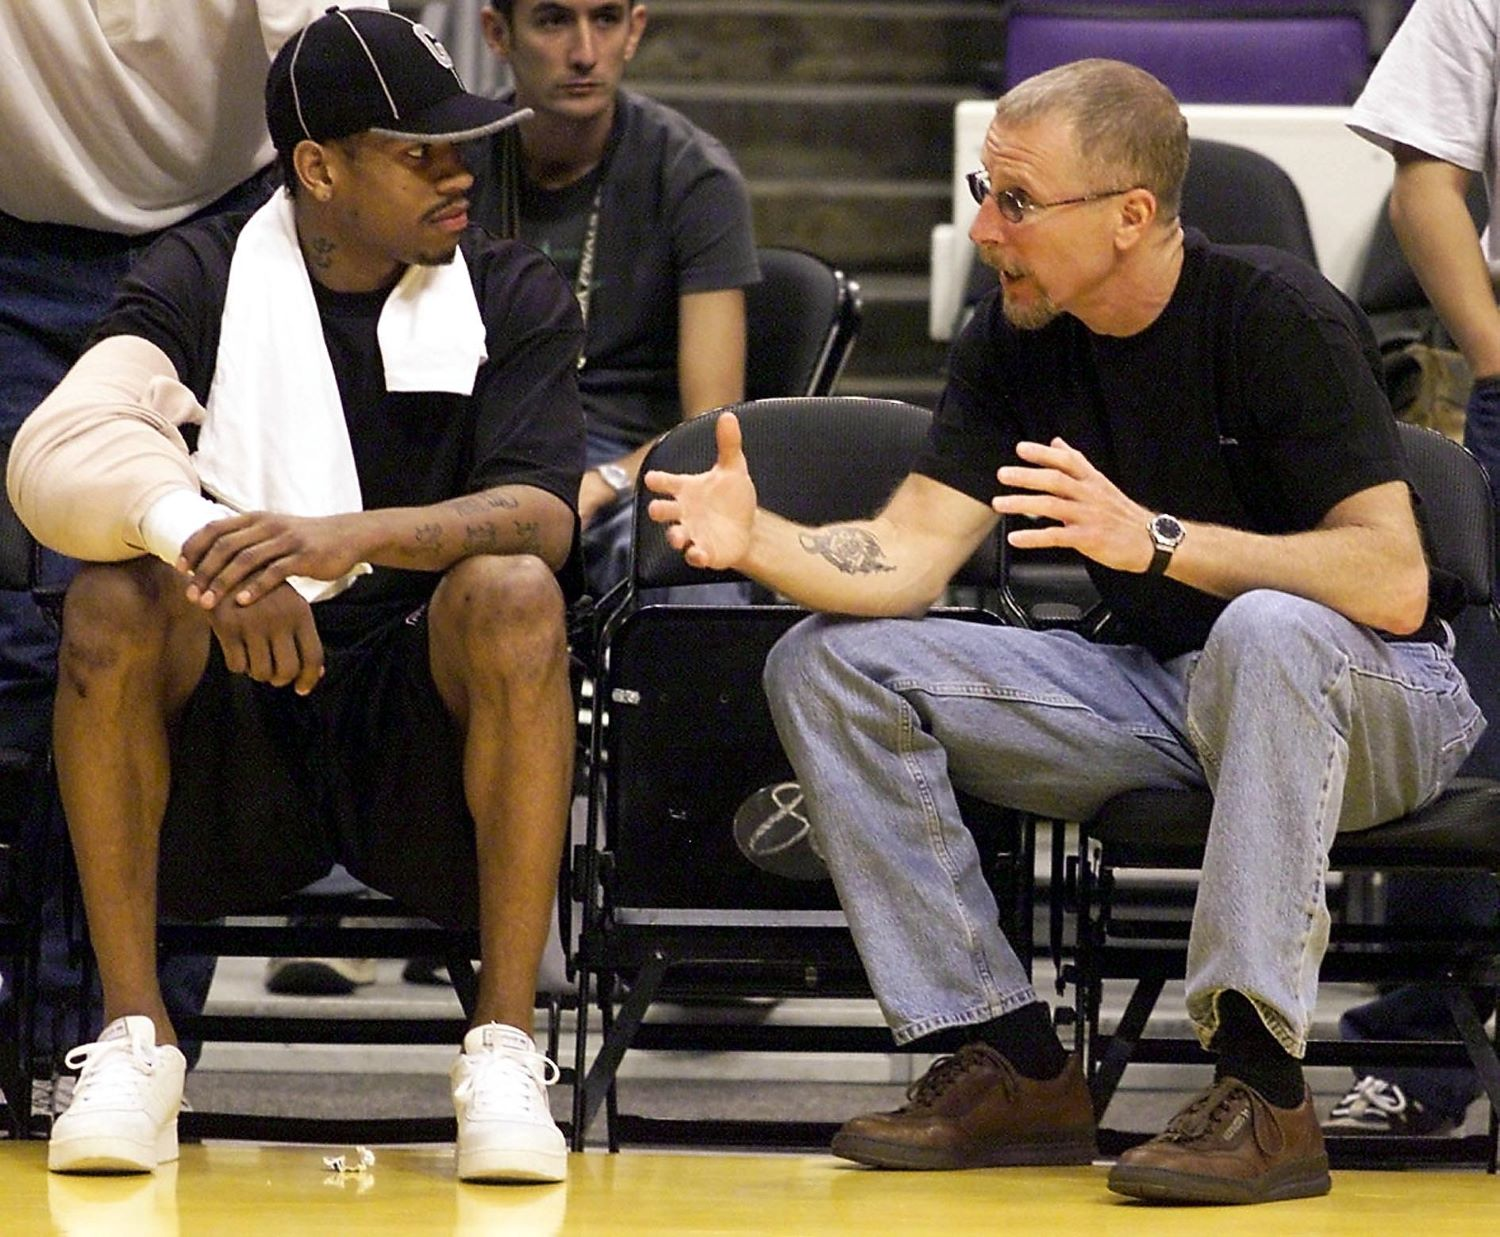 Former 76ers owner Pat Croce was forced to fire his own brother after he committed a petty crime against Allen Iverson